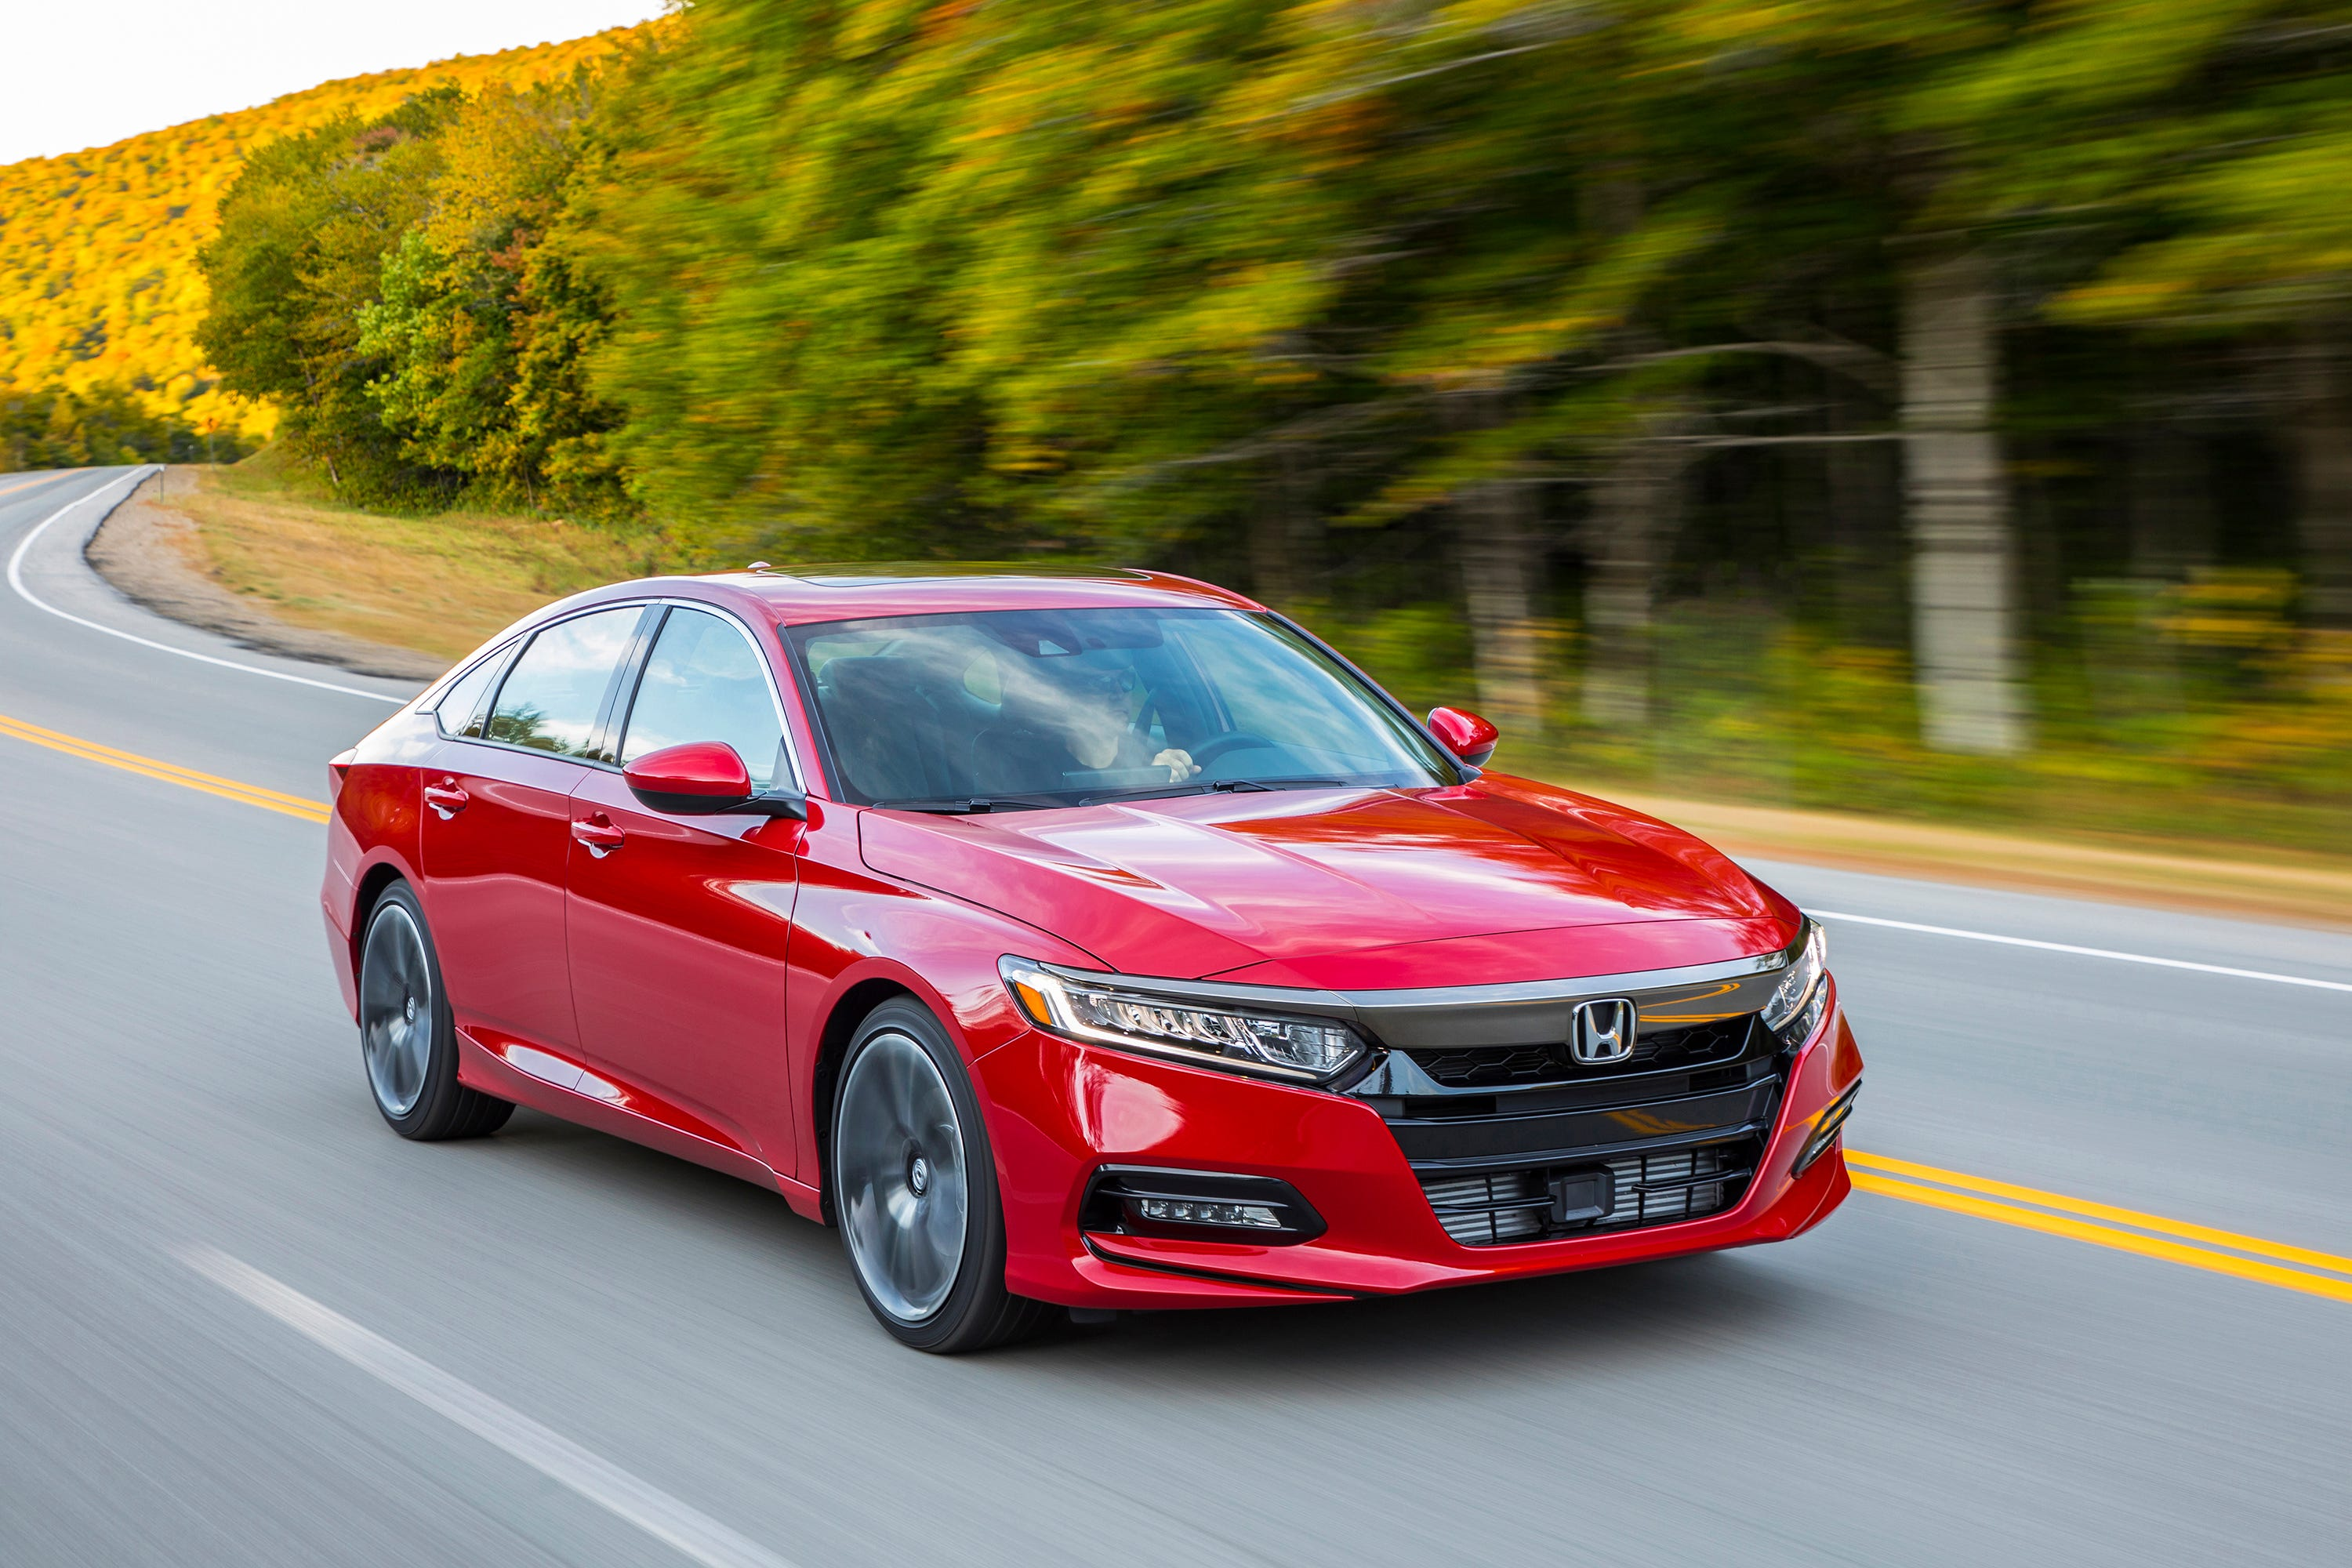 This Photo Provided By Honda Shows The 2018 Honda Accord,